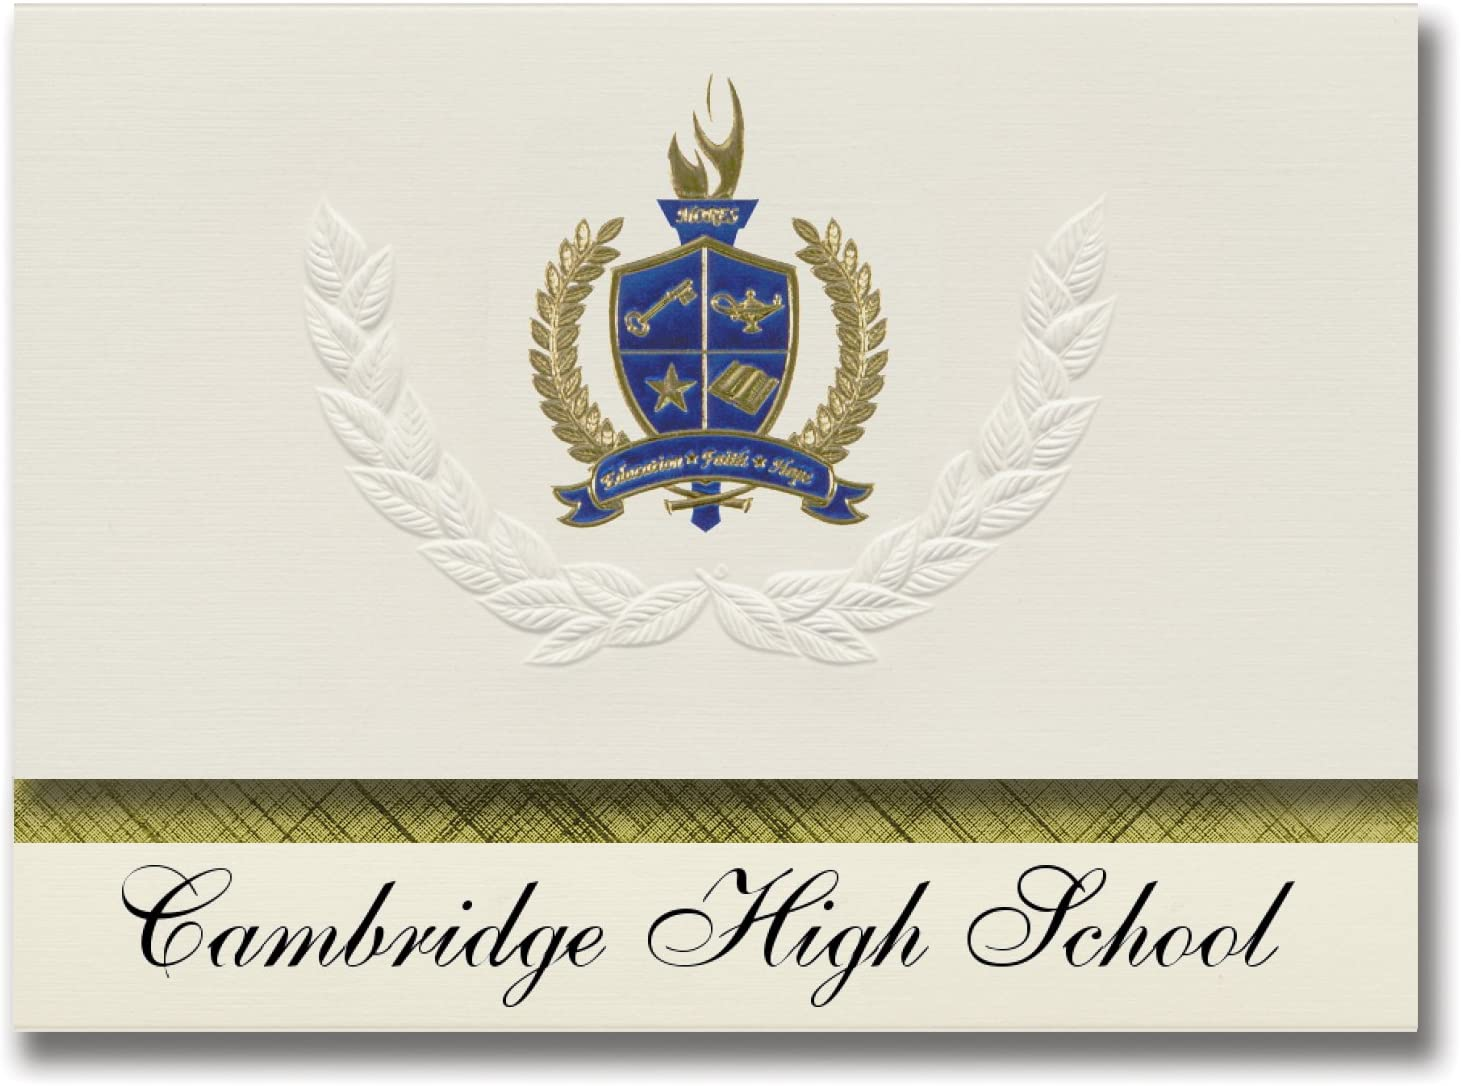 Signature Announcements Cambridge High School (Garden City, MI) Graduation Announcements, Presidential style, Basic package of 25 with Gold & Blue Metallic Foil seal